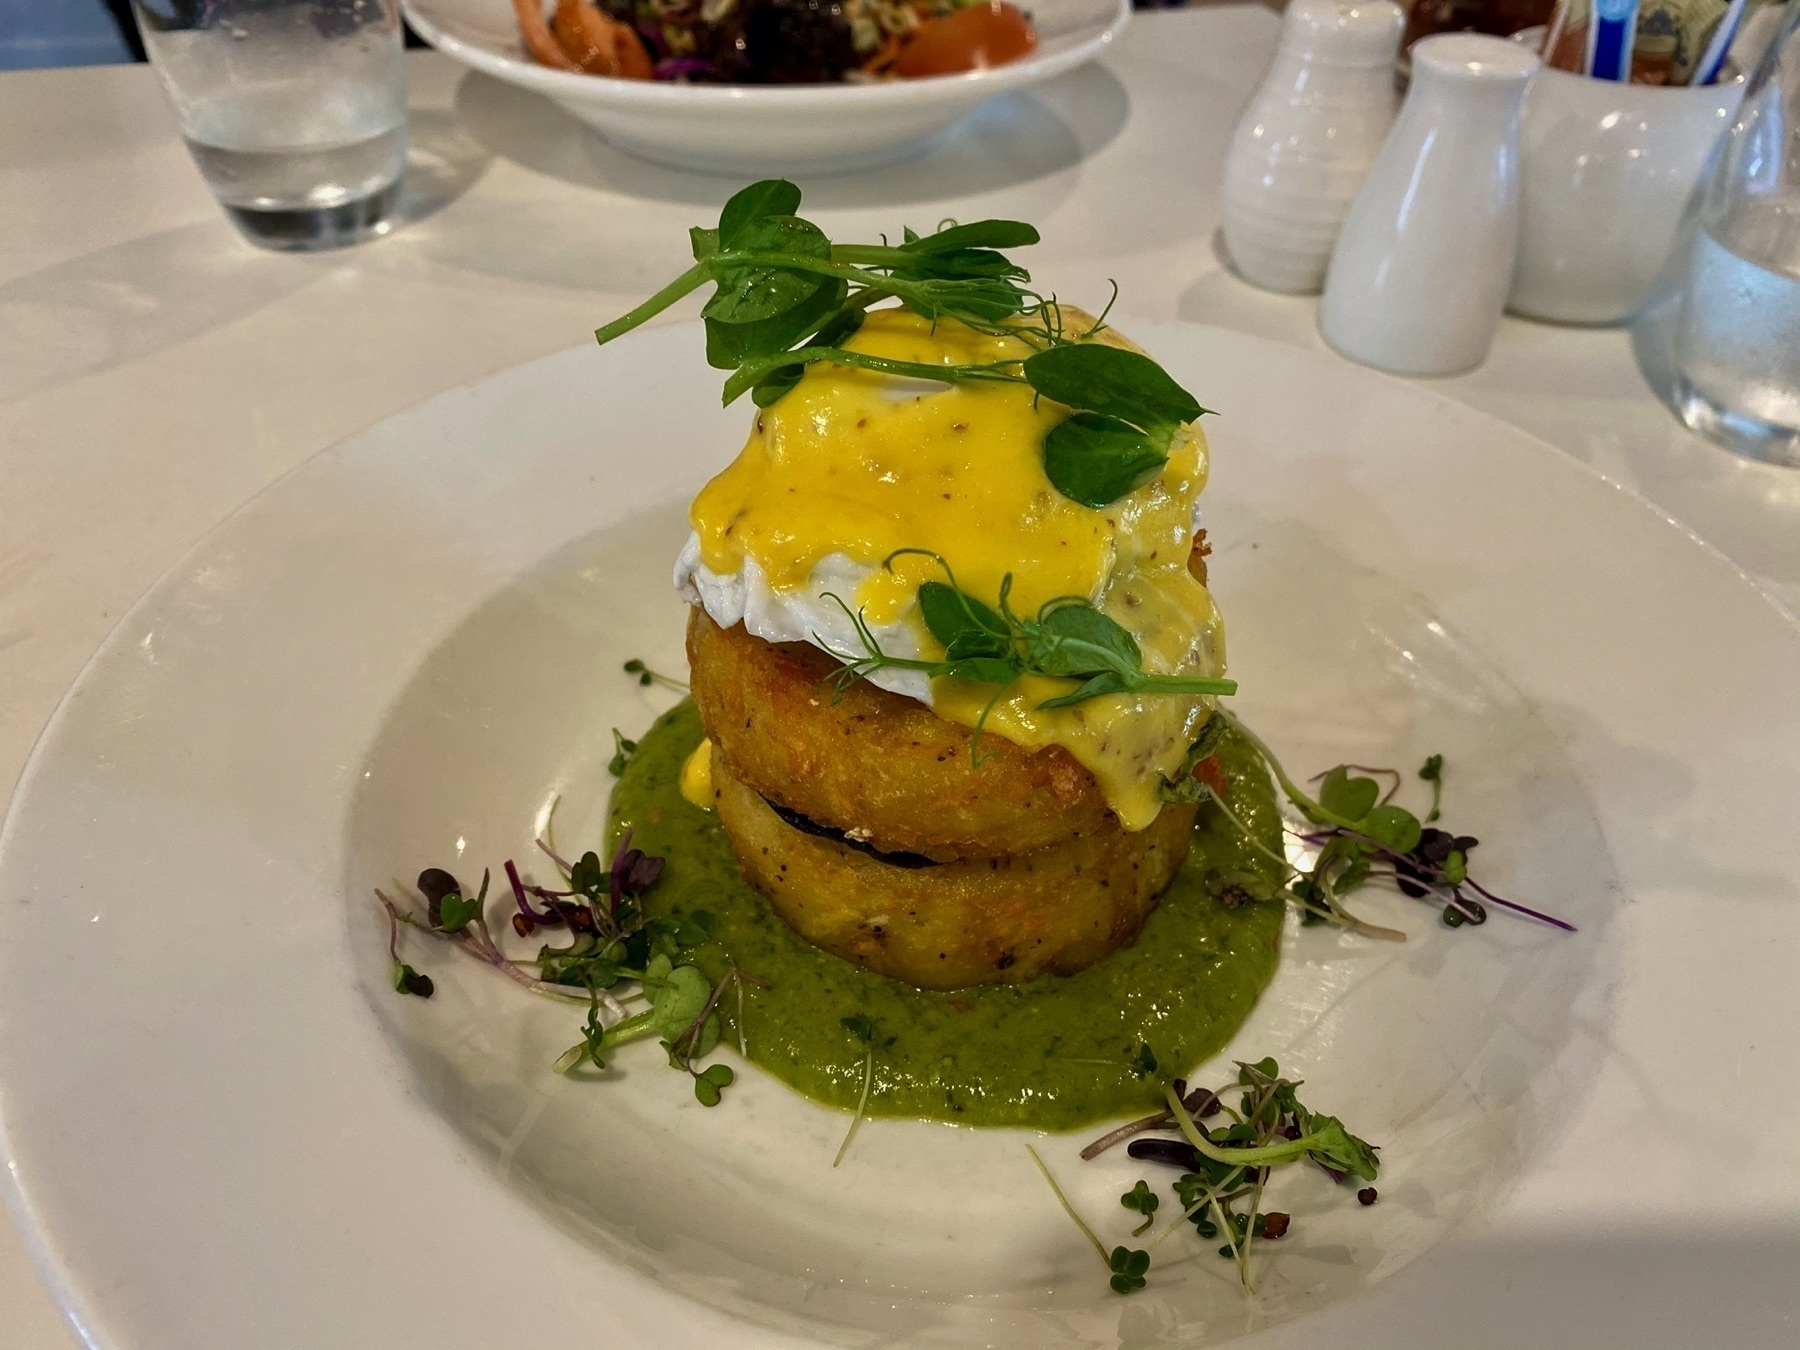 Potato rosti stack with avocado, egg, portobello mushrooms.